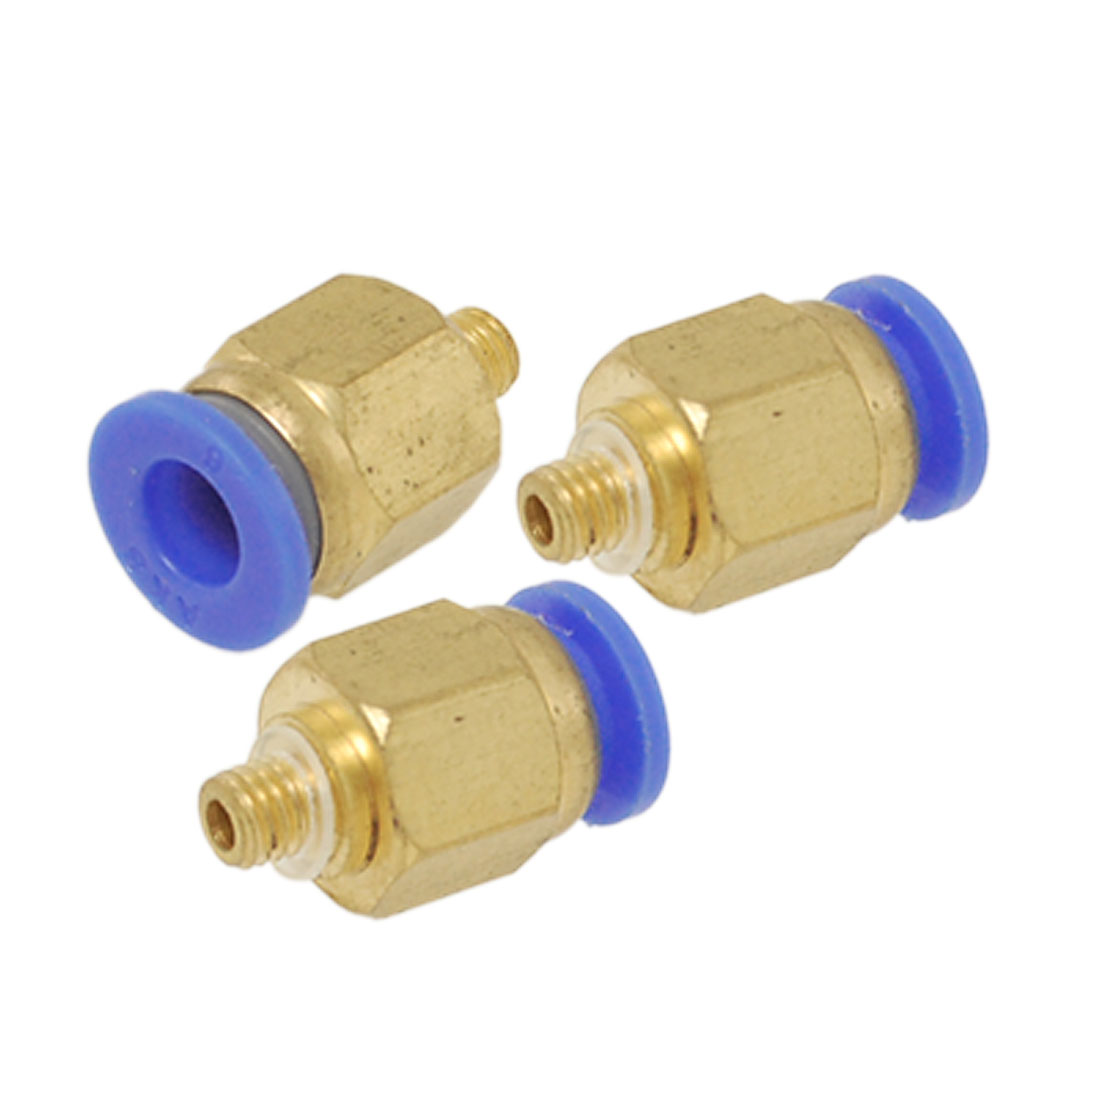 3 Pcs Pneumatic Chrome-plated Brass Push In Quick Joint Fittings